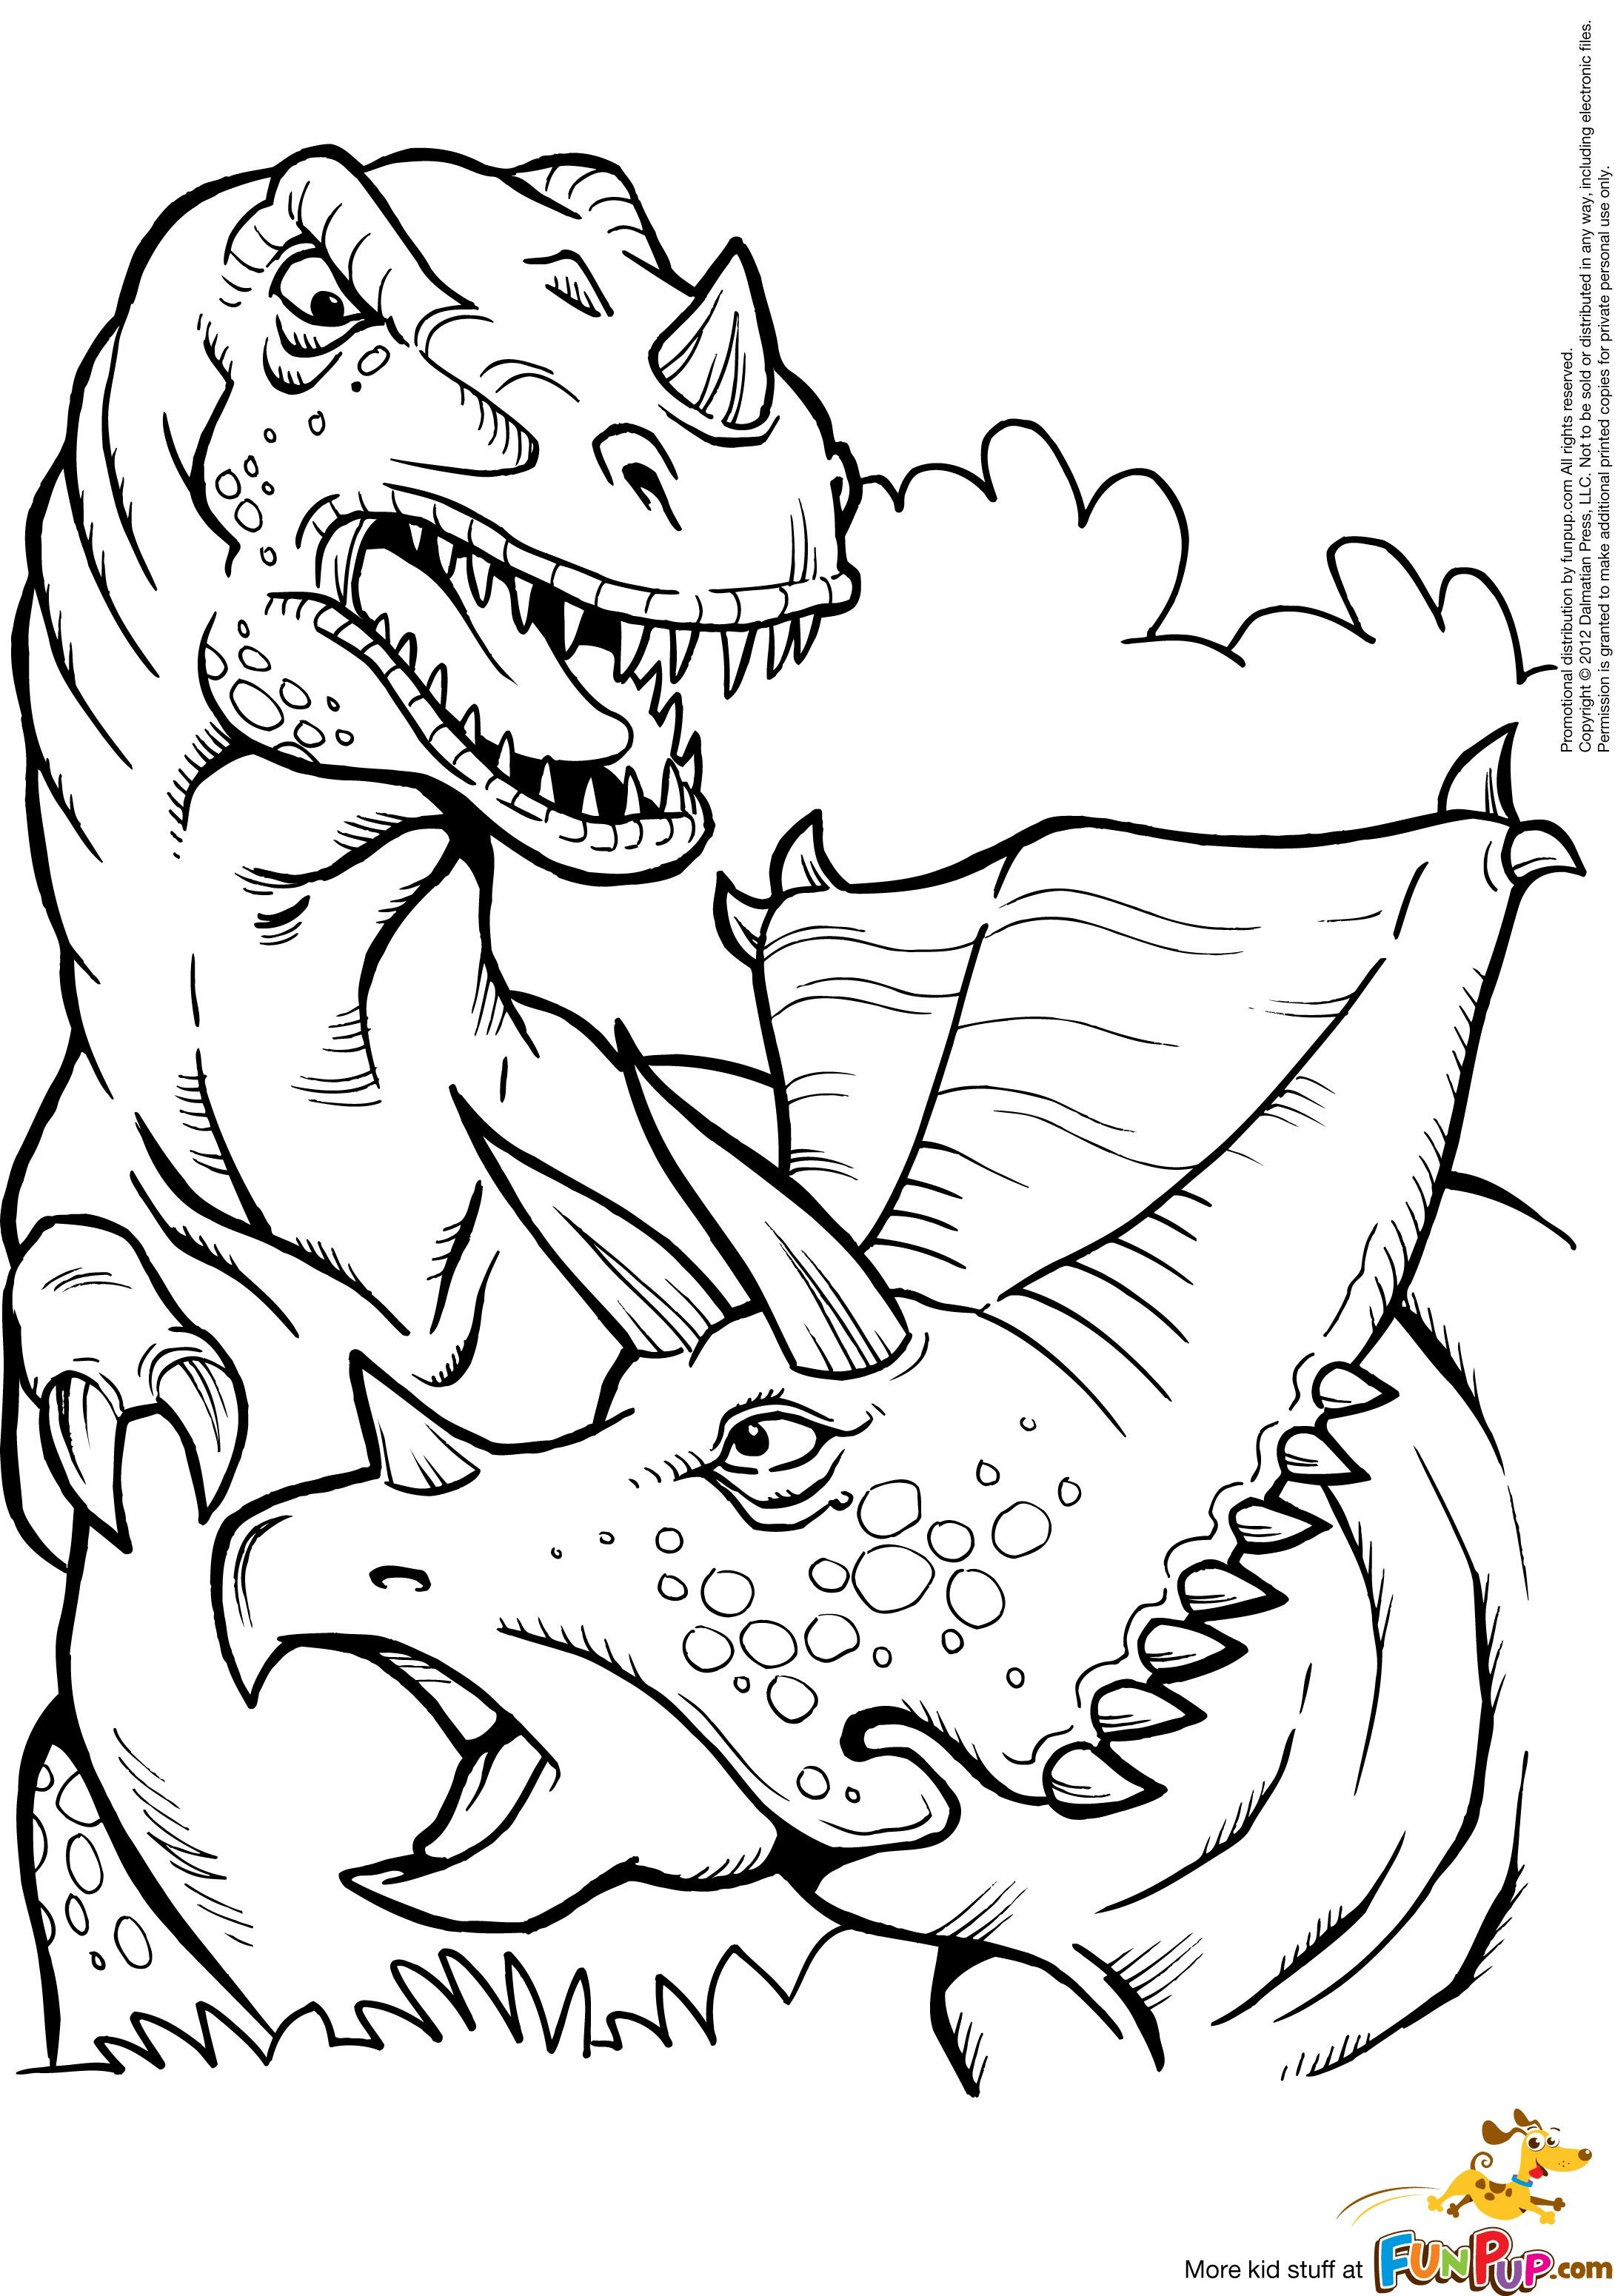 Pin By Katherine Dallaire On Coloring Dinosaur Coloring Pages